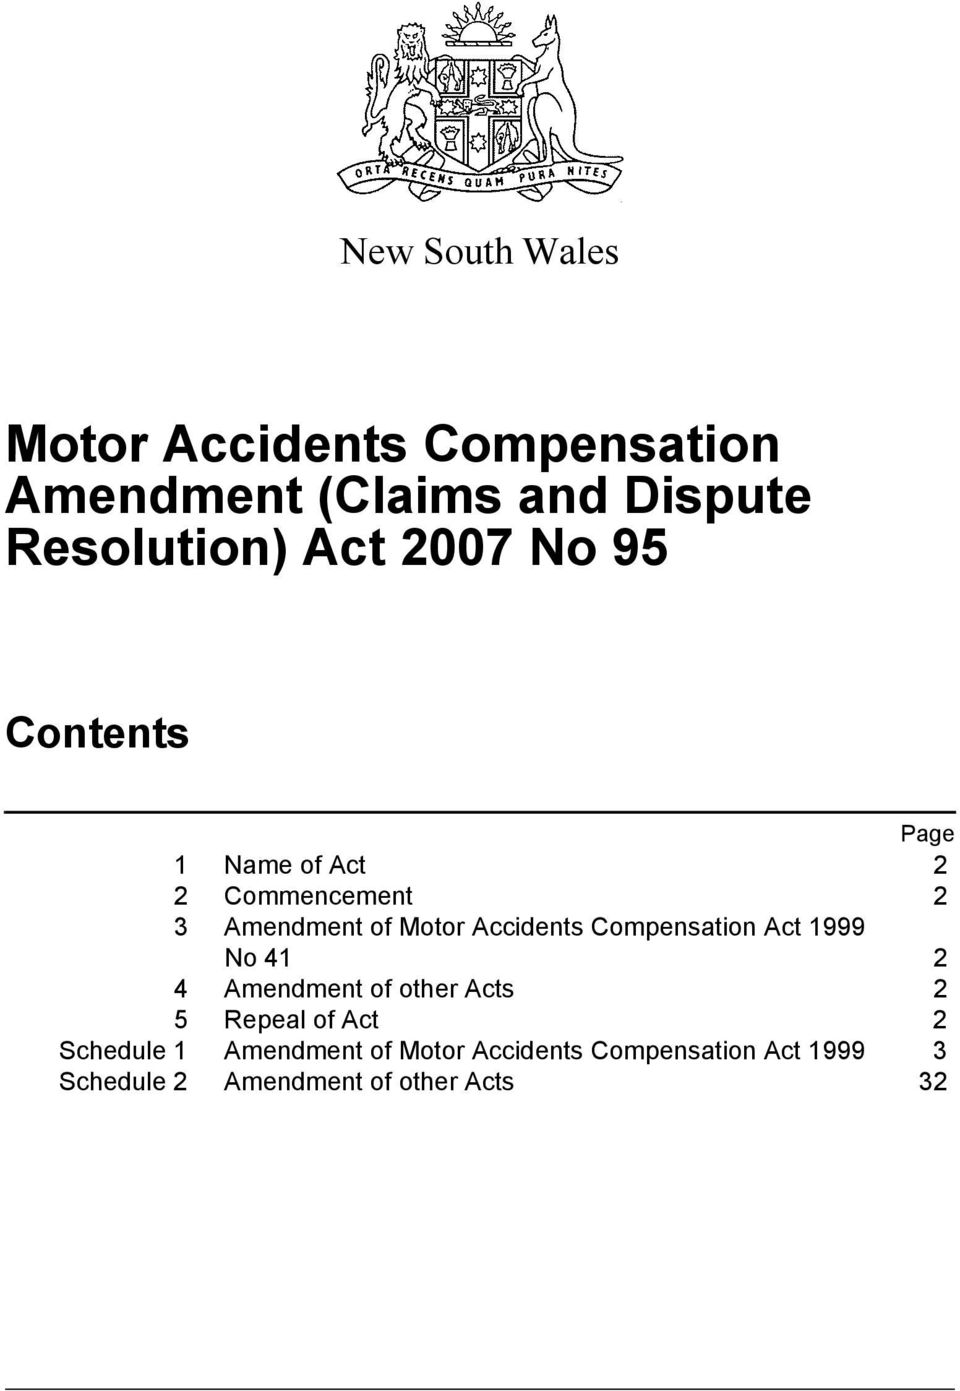 Compensation Act 1999 No 41 2 4 Amendment of other Acts 2 5 Repeal of Act 2